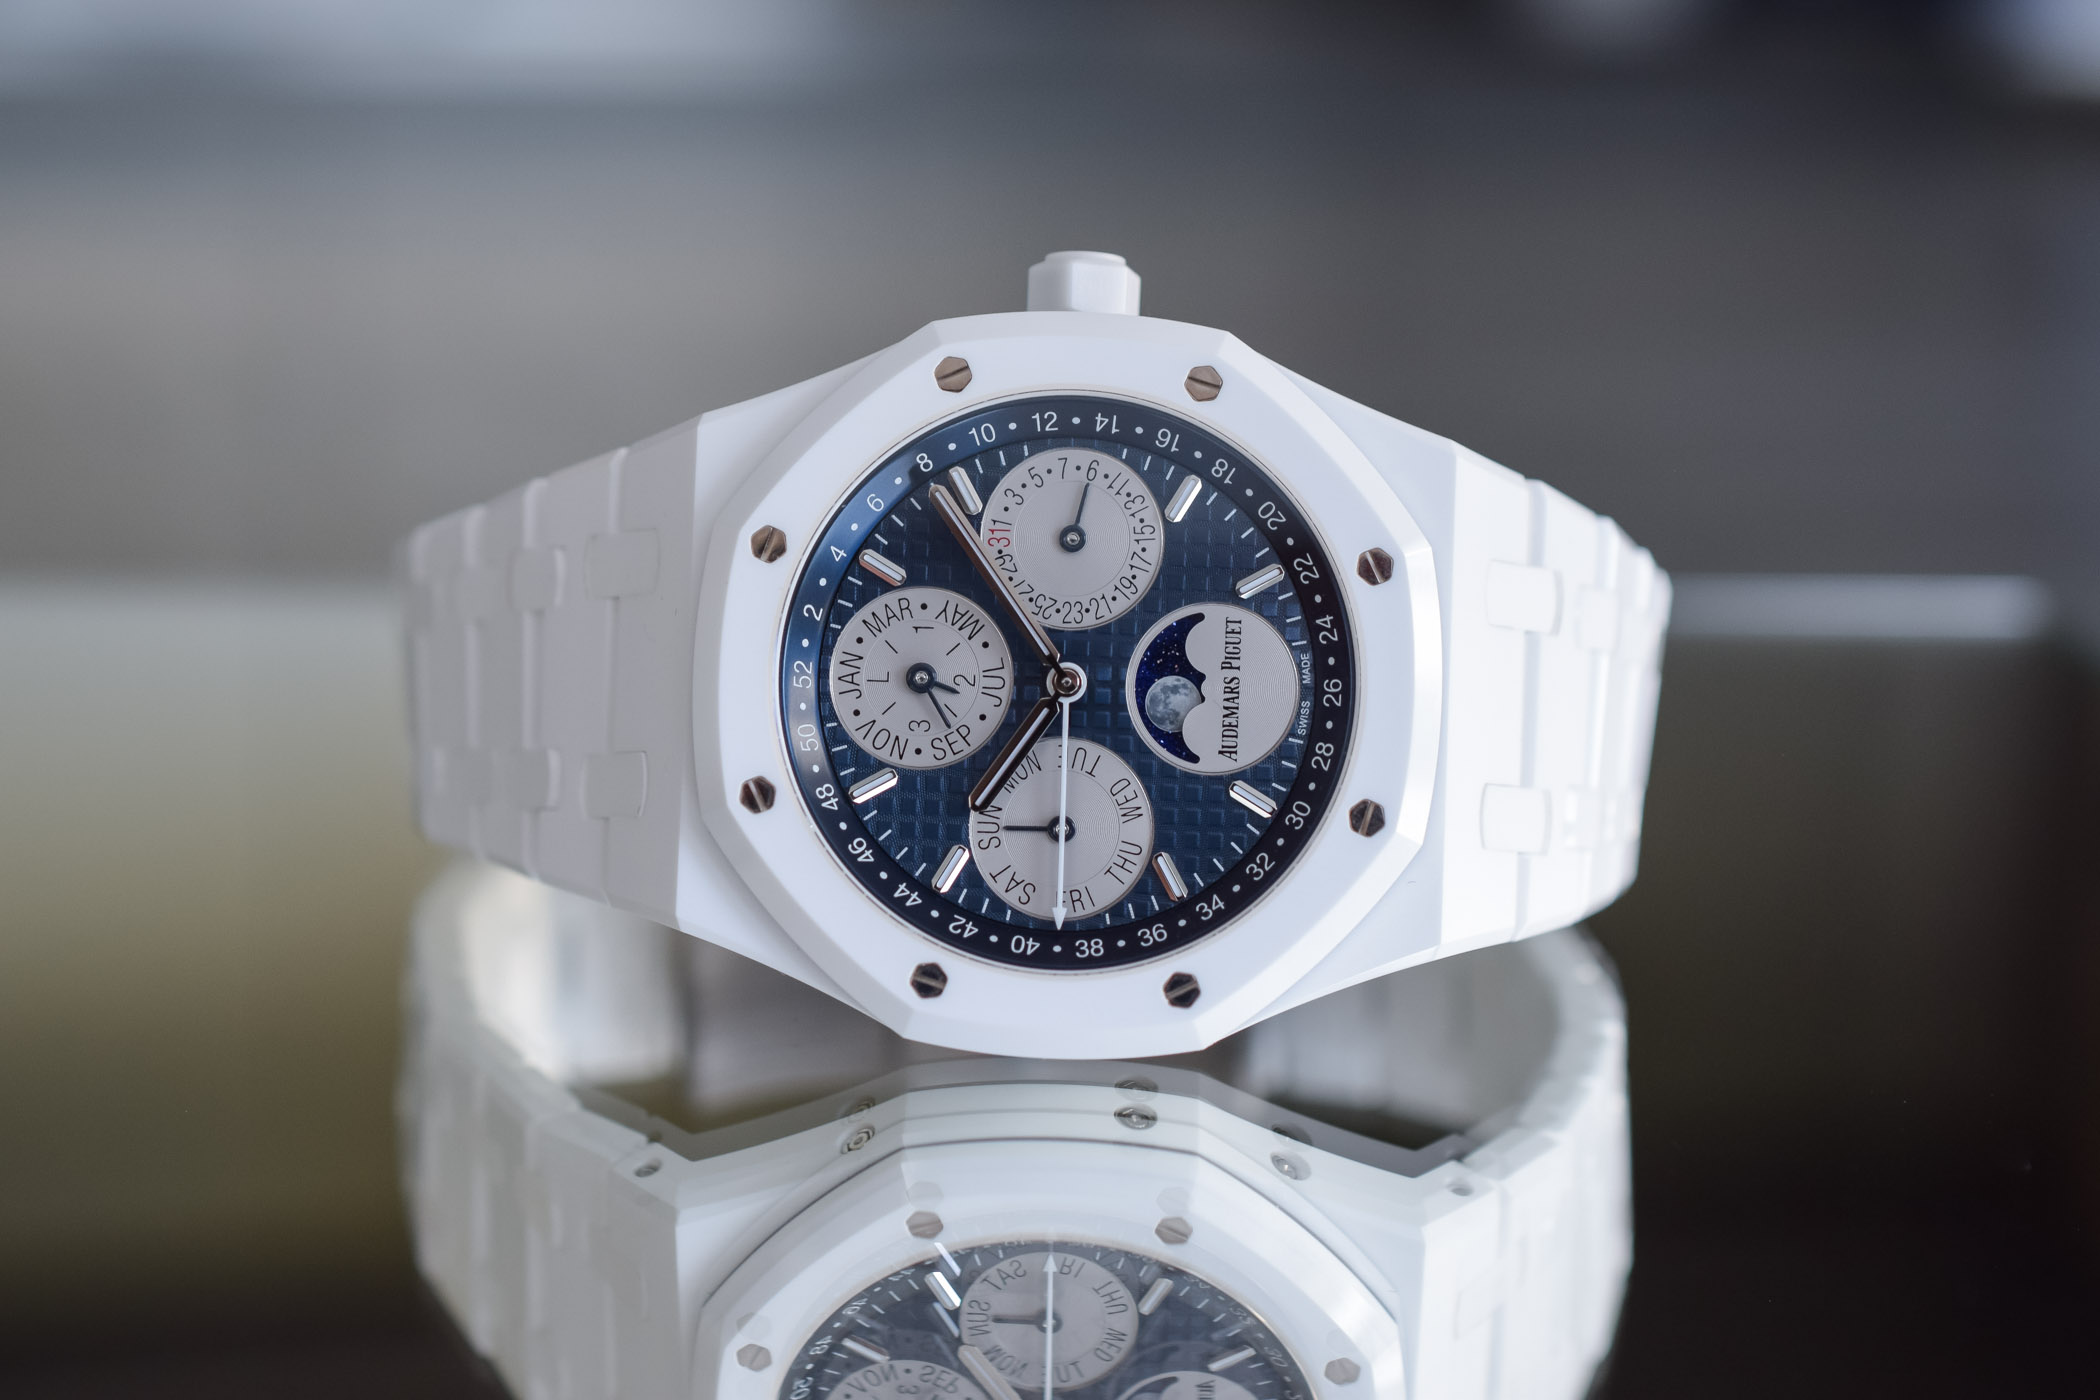 Audemars Piguet Royal Oak Perpetual Calendar White Ceramic 26579CB.OO.1225CB.01